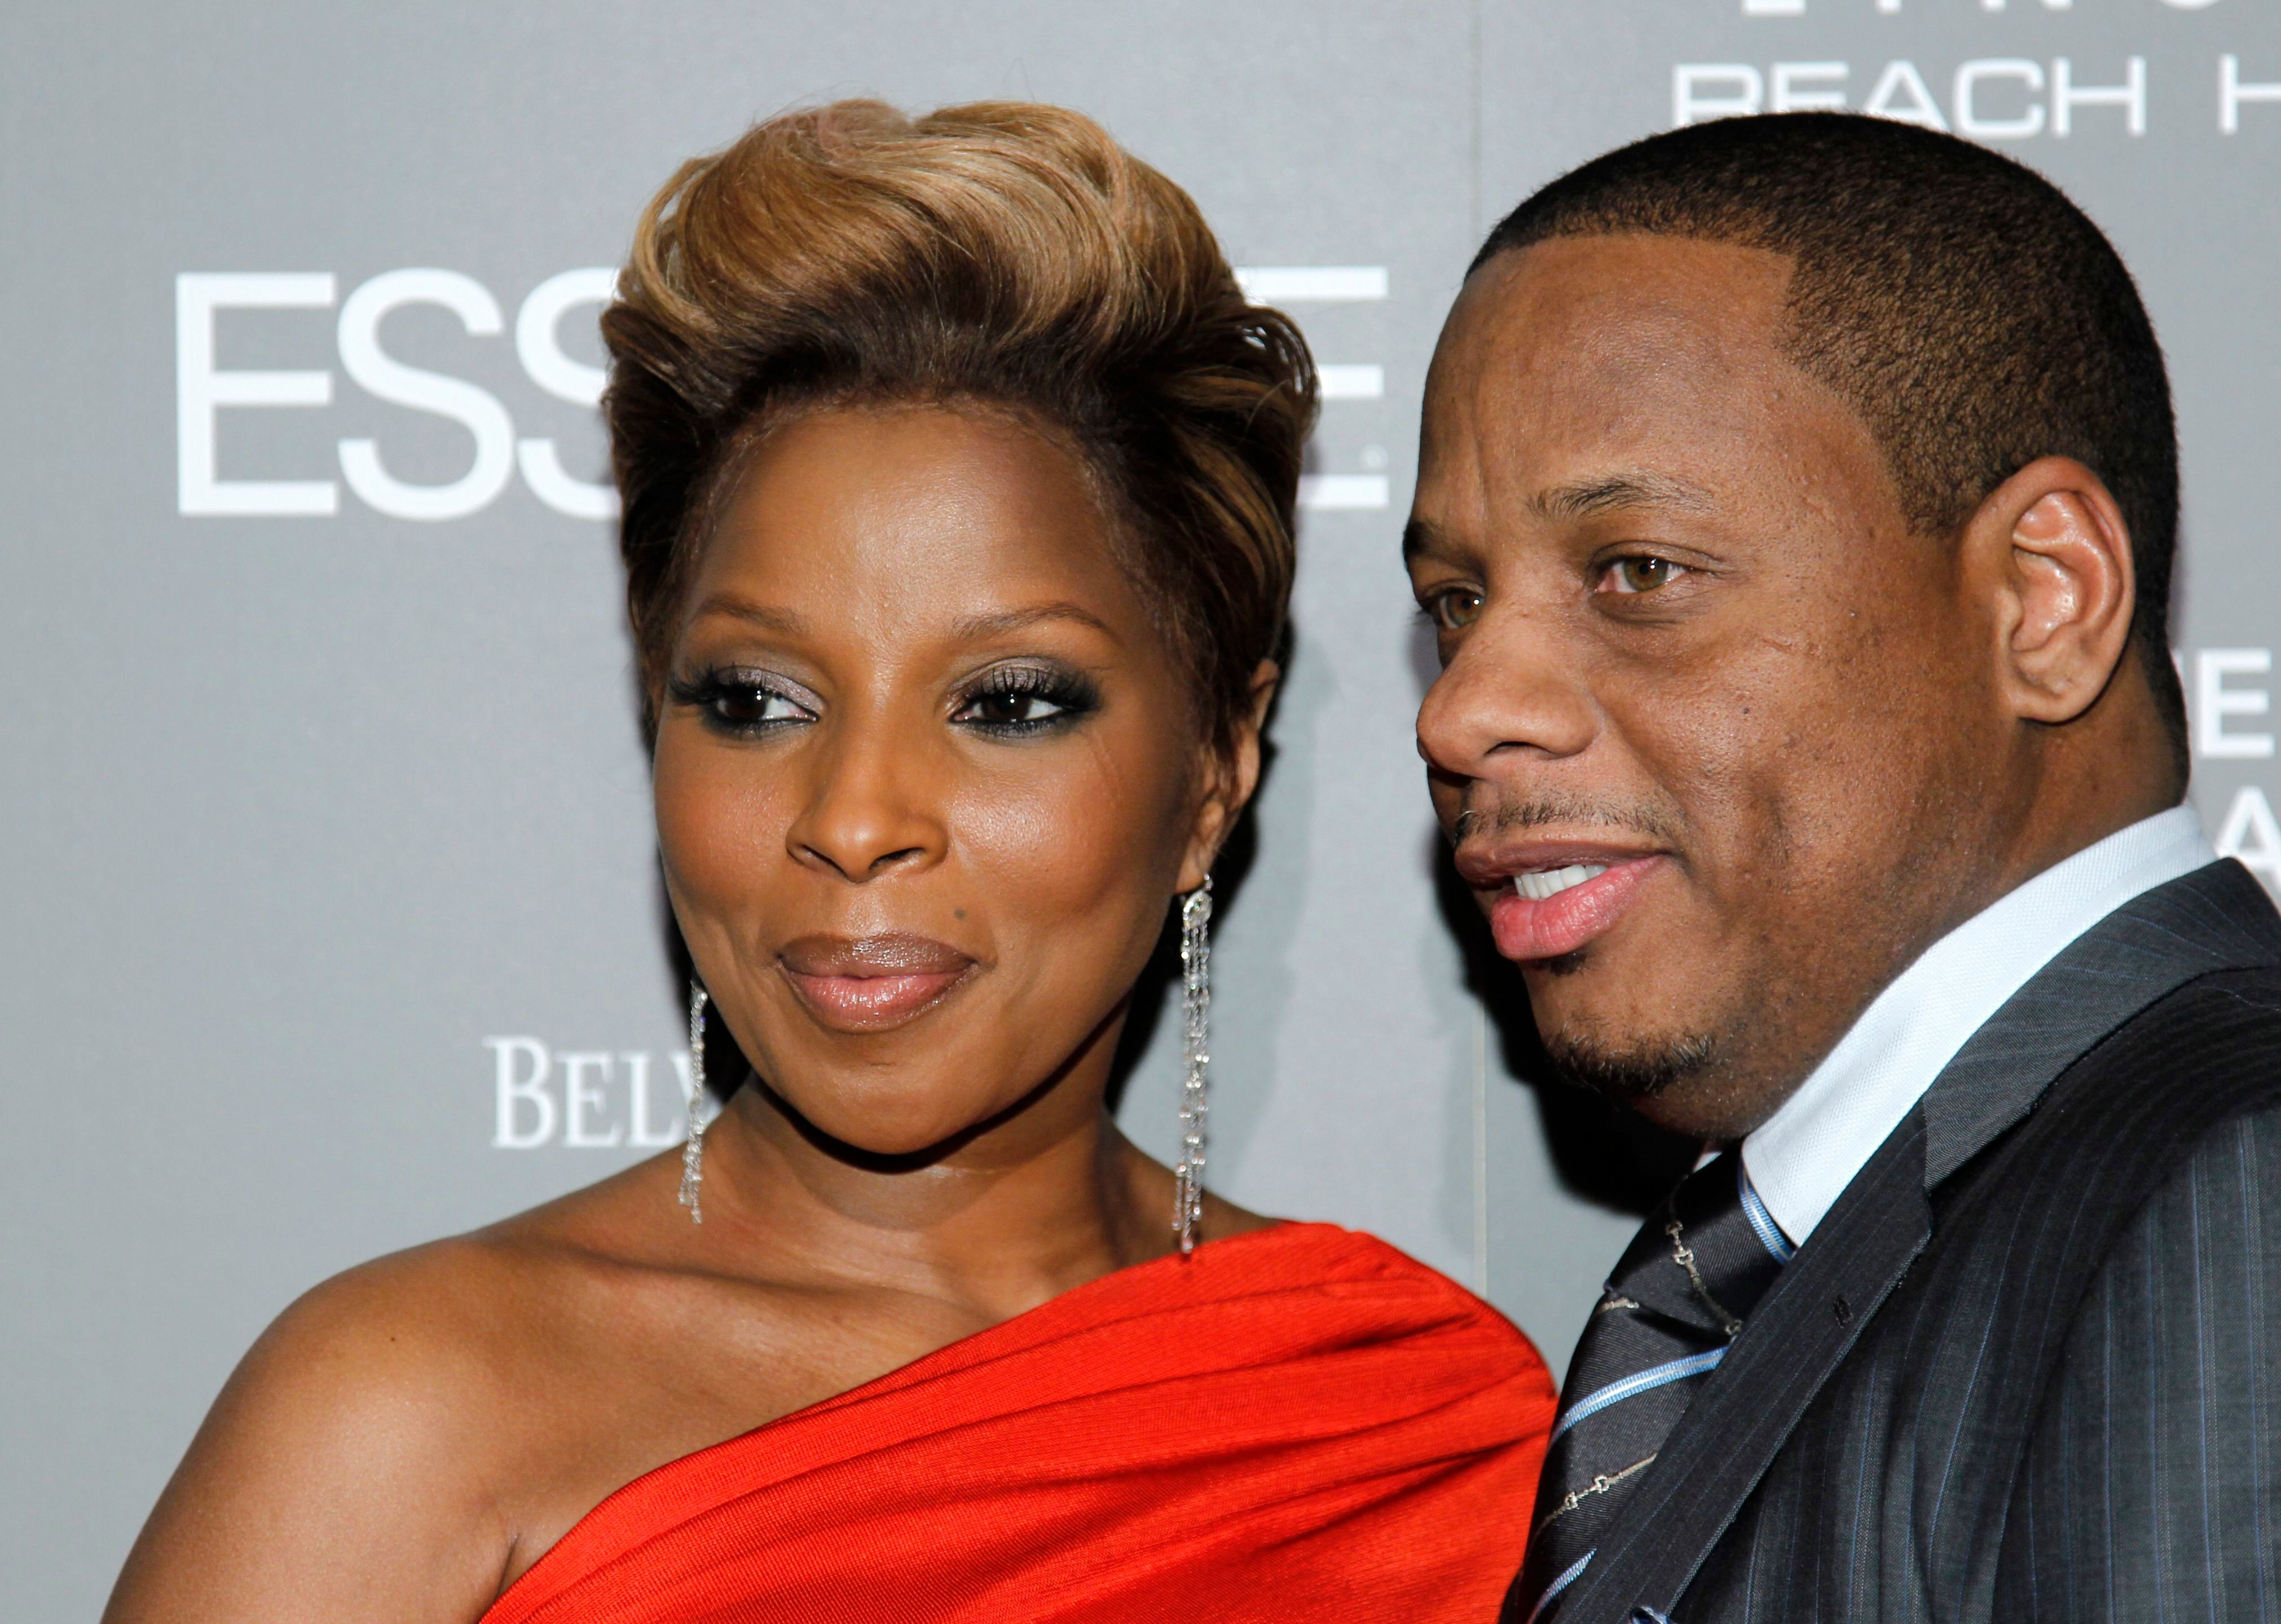 Honoree Mary J. Blige, left, and her husband Kendu Isaacs arrives at the Essence Black Women in Music: Honoring the Career & Accomplishments of Mary J. Blige reception in West Hollywood, Calif. on Wednesday, Jan. 27, 2009. (AP Photo/Danny Moloshok)